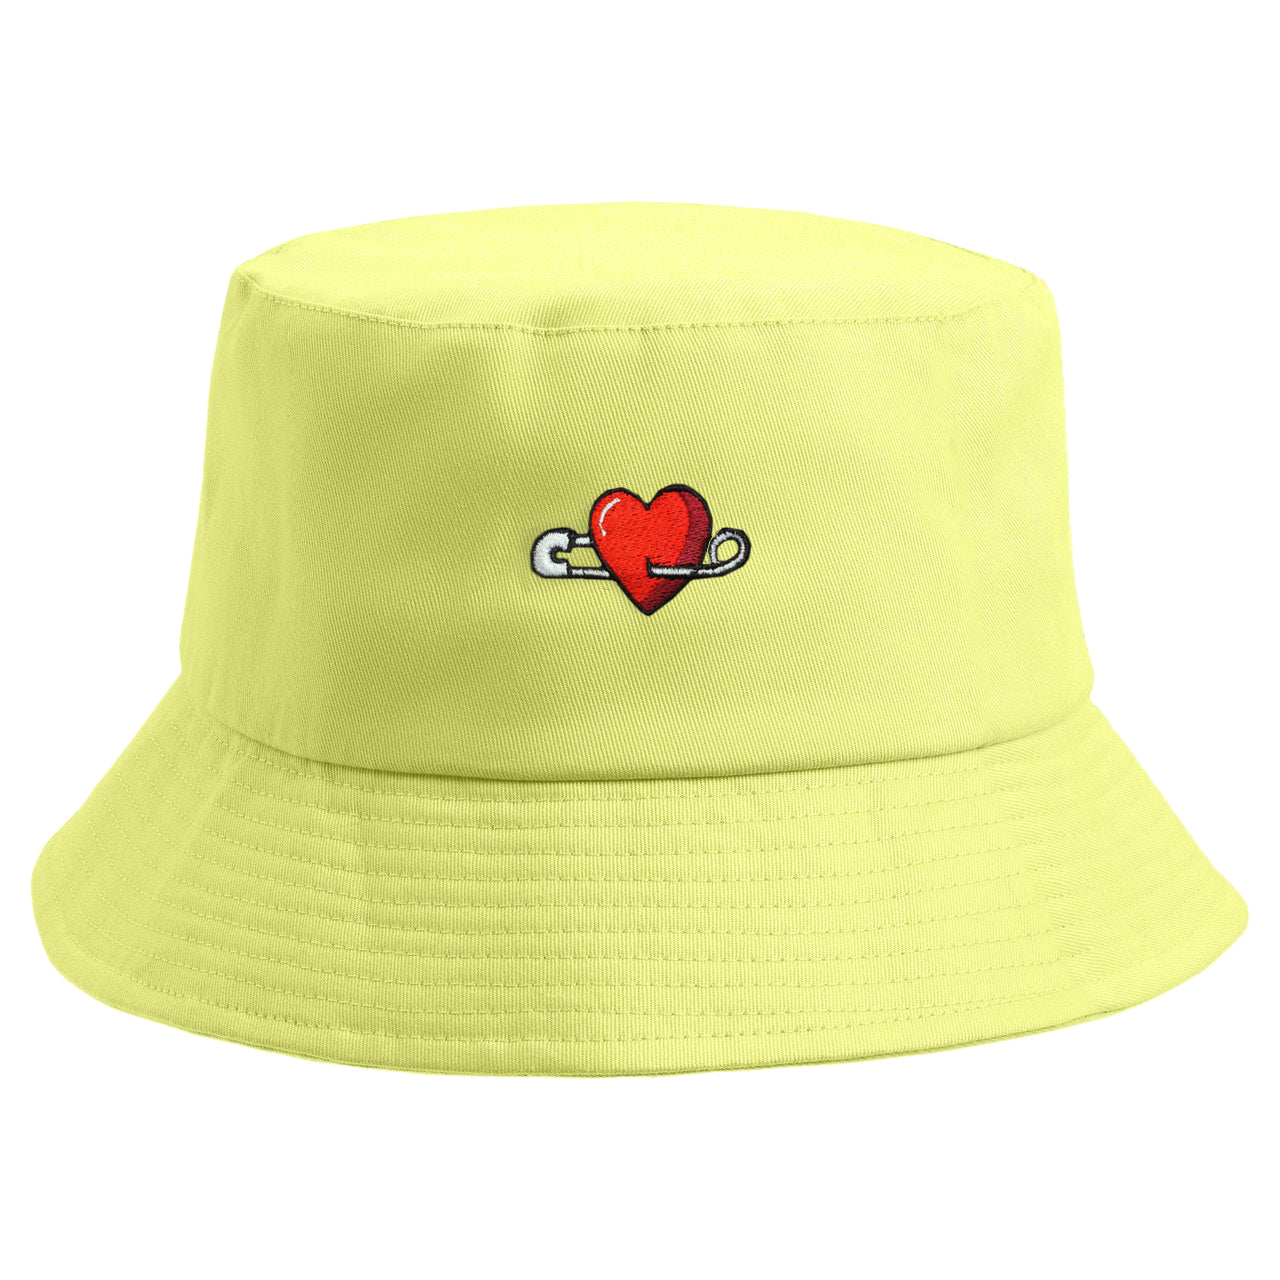 Embroidered My Heart Bucket Hat